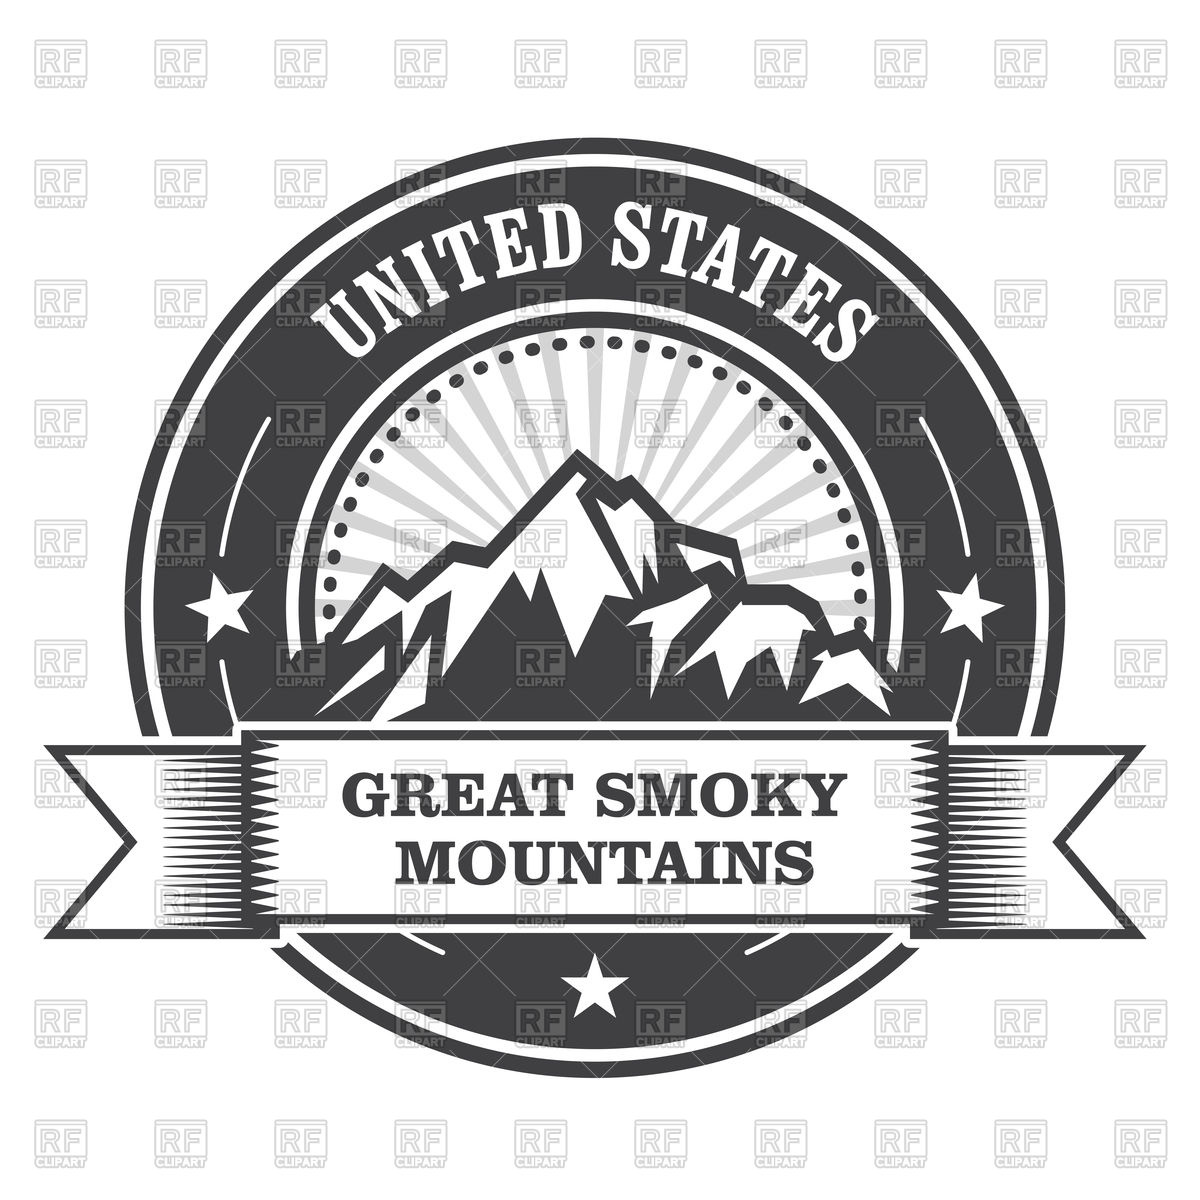 Smoky Mountains clipart #2, Download drawings